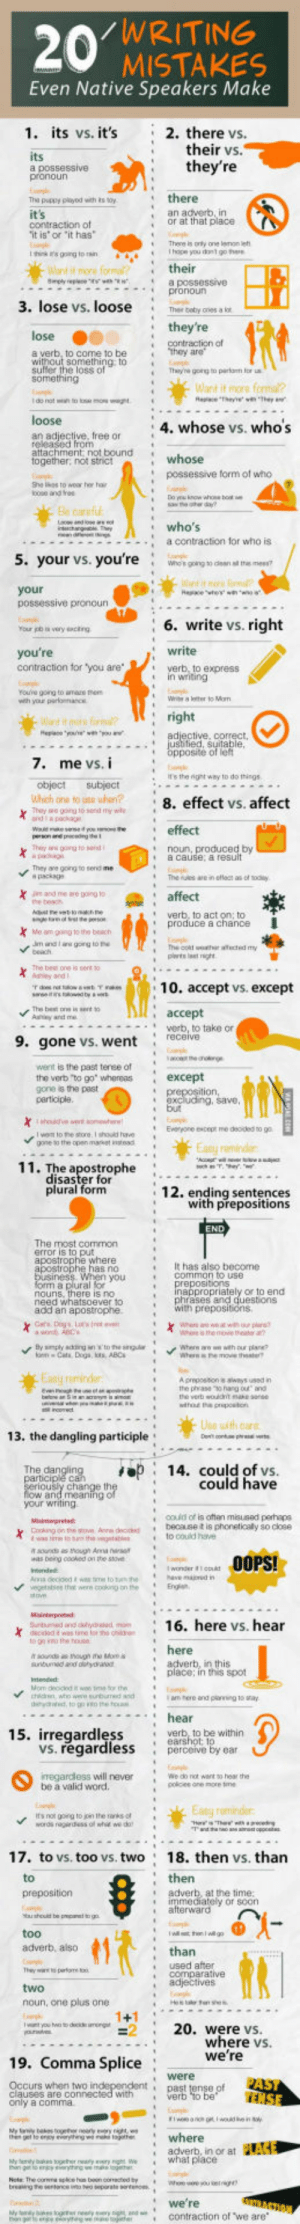 """Abc, Affect, and Common: /WRITING  MISTAKES  Even Native Speakers Make  1. its vs. it's 2. there vs.  their vs.  its  an adverb, in  or at that place  contraction ot  it is or """"it has  There is only one lemon le  I think i's going io  their  3. lose vs. looseey Ce  they're  a verb, to come to be  sufer the loss of  Mant it ore foma?  : 4. whose vs. whos  an adjective, free or  released from  attachment not bound  together, not strict  '  possessive form of who  a contraction for who is  5. your vs. you're  6. write vs. right  re  contraction tor 'you areverb to express  going to amare em  d it m  7. me vs.  s the ogt way to do things  object subject  : 8, effect vs. affect  χ Troy """"packaU16 send mywle  They ave going to sernd ime  verb, to act on: to  produce a c  om gong to the beech  10. accept vs. except  accept  -  werb, to take or  9. gone vs. went receive  went is the past teree of  the verb """"to go"""" whereas except  e the past  Everone excep me deoided 0g0  disaster for  plural form  12. ending sentences  with prepositions  The most common  error is to put  It has also become  common to use  rophe has no  When you  appropria  or to end  Cets Doga,lotS ABC  Easy reminder  13. the dangling participle  The da  14. could of vs.  n could have  your writing  coud of is aten misused pehaps  to couild have  eoetsbles thaer were cooling on tEna  : 16. here vs. hear  adverb, in this  place; in this spot  chichin who were sunburned  andam here and  the fo  15. irregardless  to be within  vs. regardless perceve by ear  will naveroone micte se  be a valid word.  17. to vs. too vs. two· 18"""" then vs. than  to  then  immediately or scon  i  too  adverb, also  than  used after  comparative  noun, one plus one  2 20. were vs  where vs.  we' re  19. Comma Splice  were  Occurs when two  clauses are C  , adverb, in or at PLEV  what place  re  n acontraction of 'we are 20 Writing Mistakes Even Native Speakers Make"""